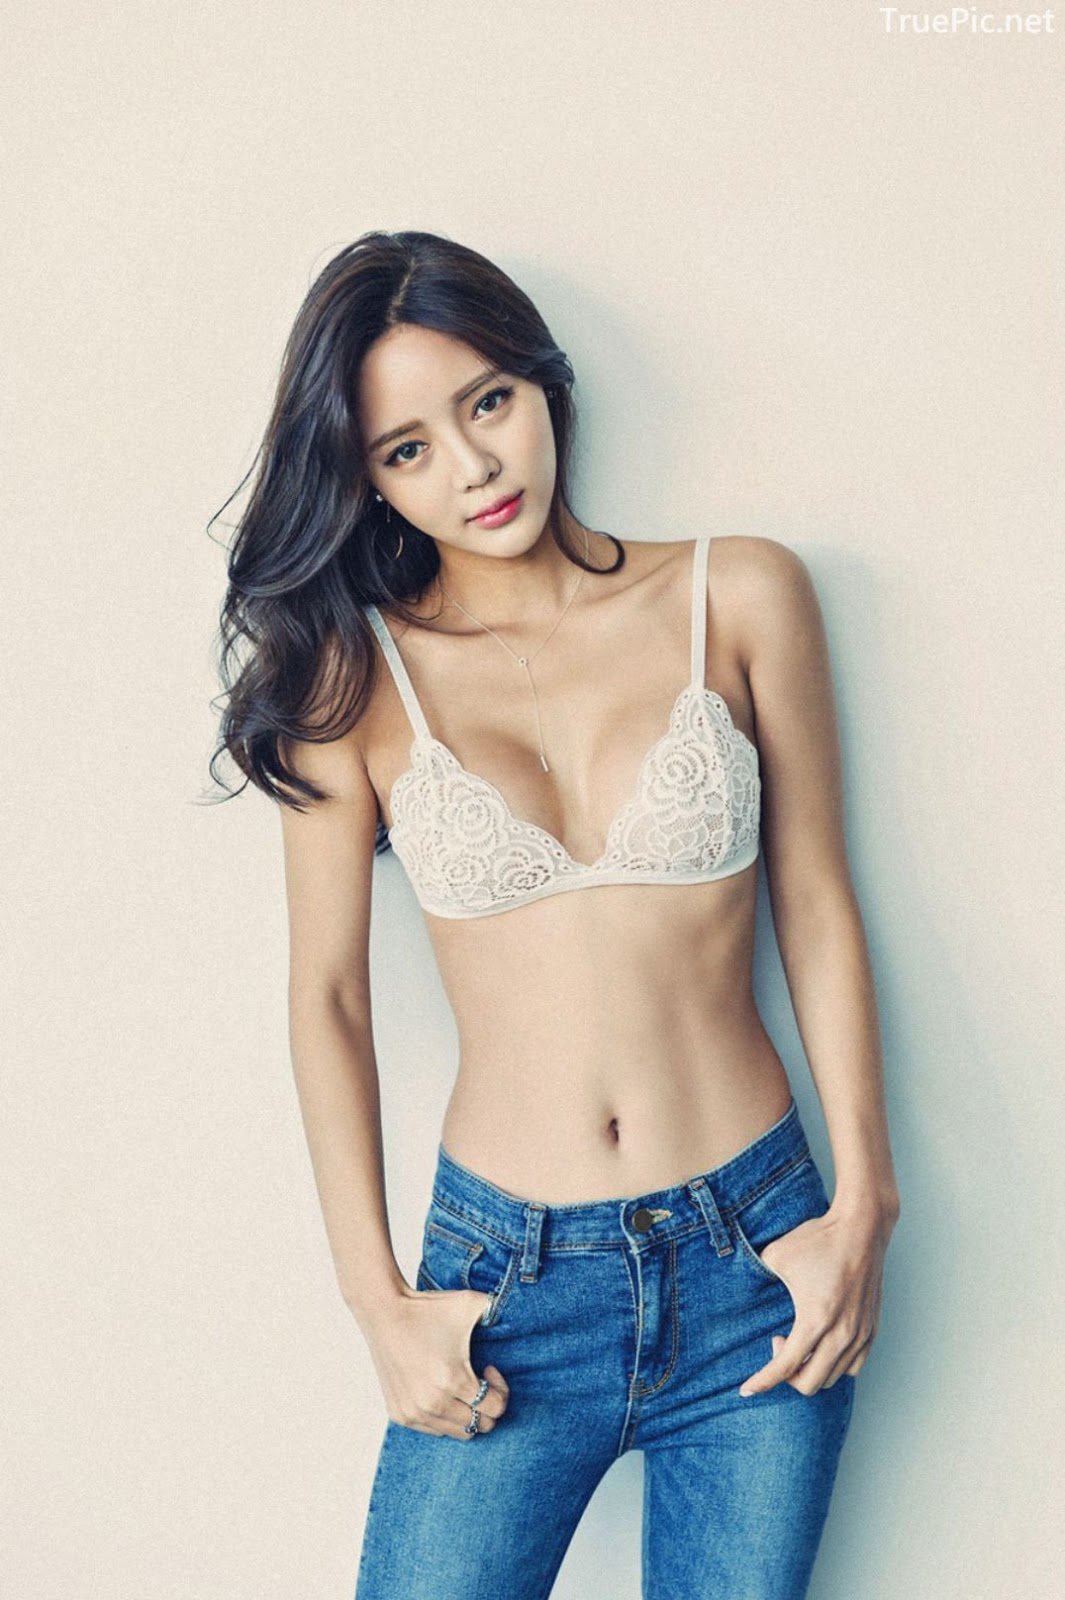 Korean Lingerie Queen - Kim Bo Ram - There's So Many Reason To Love You - TruePic.net- Picture 3